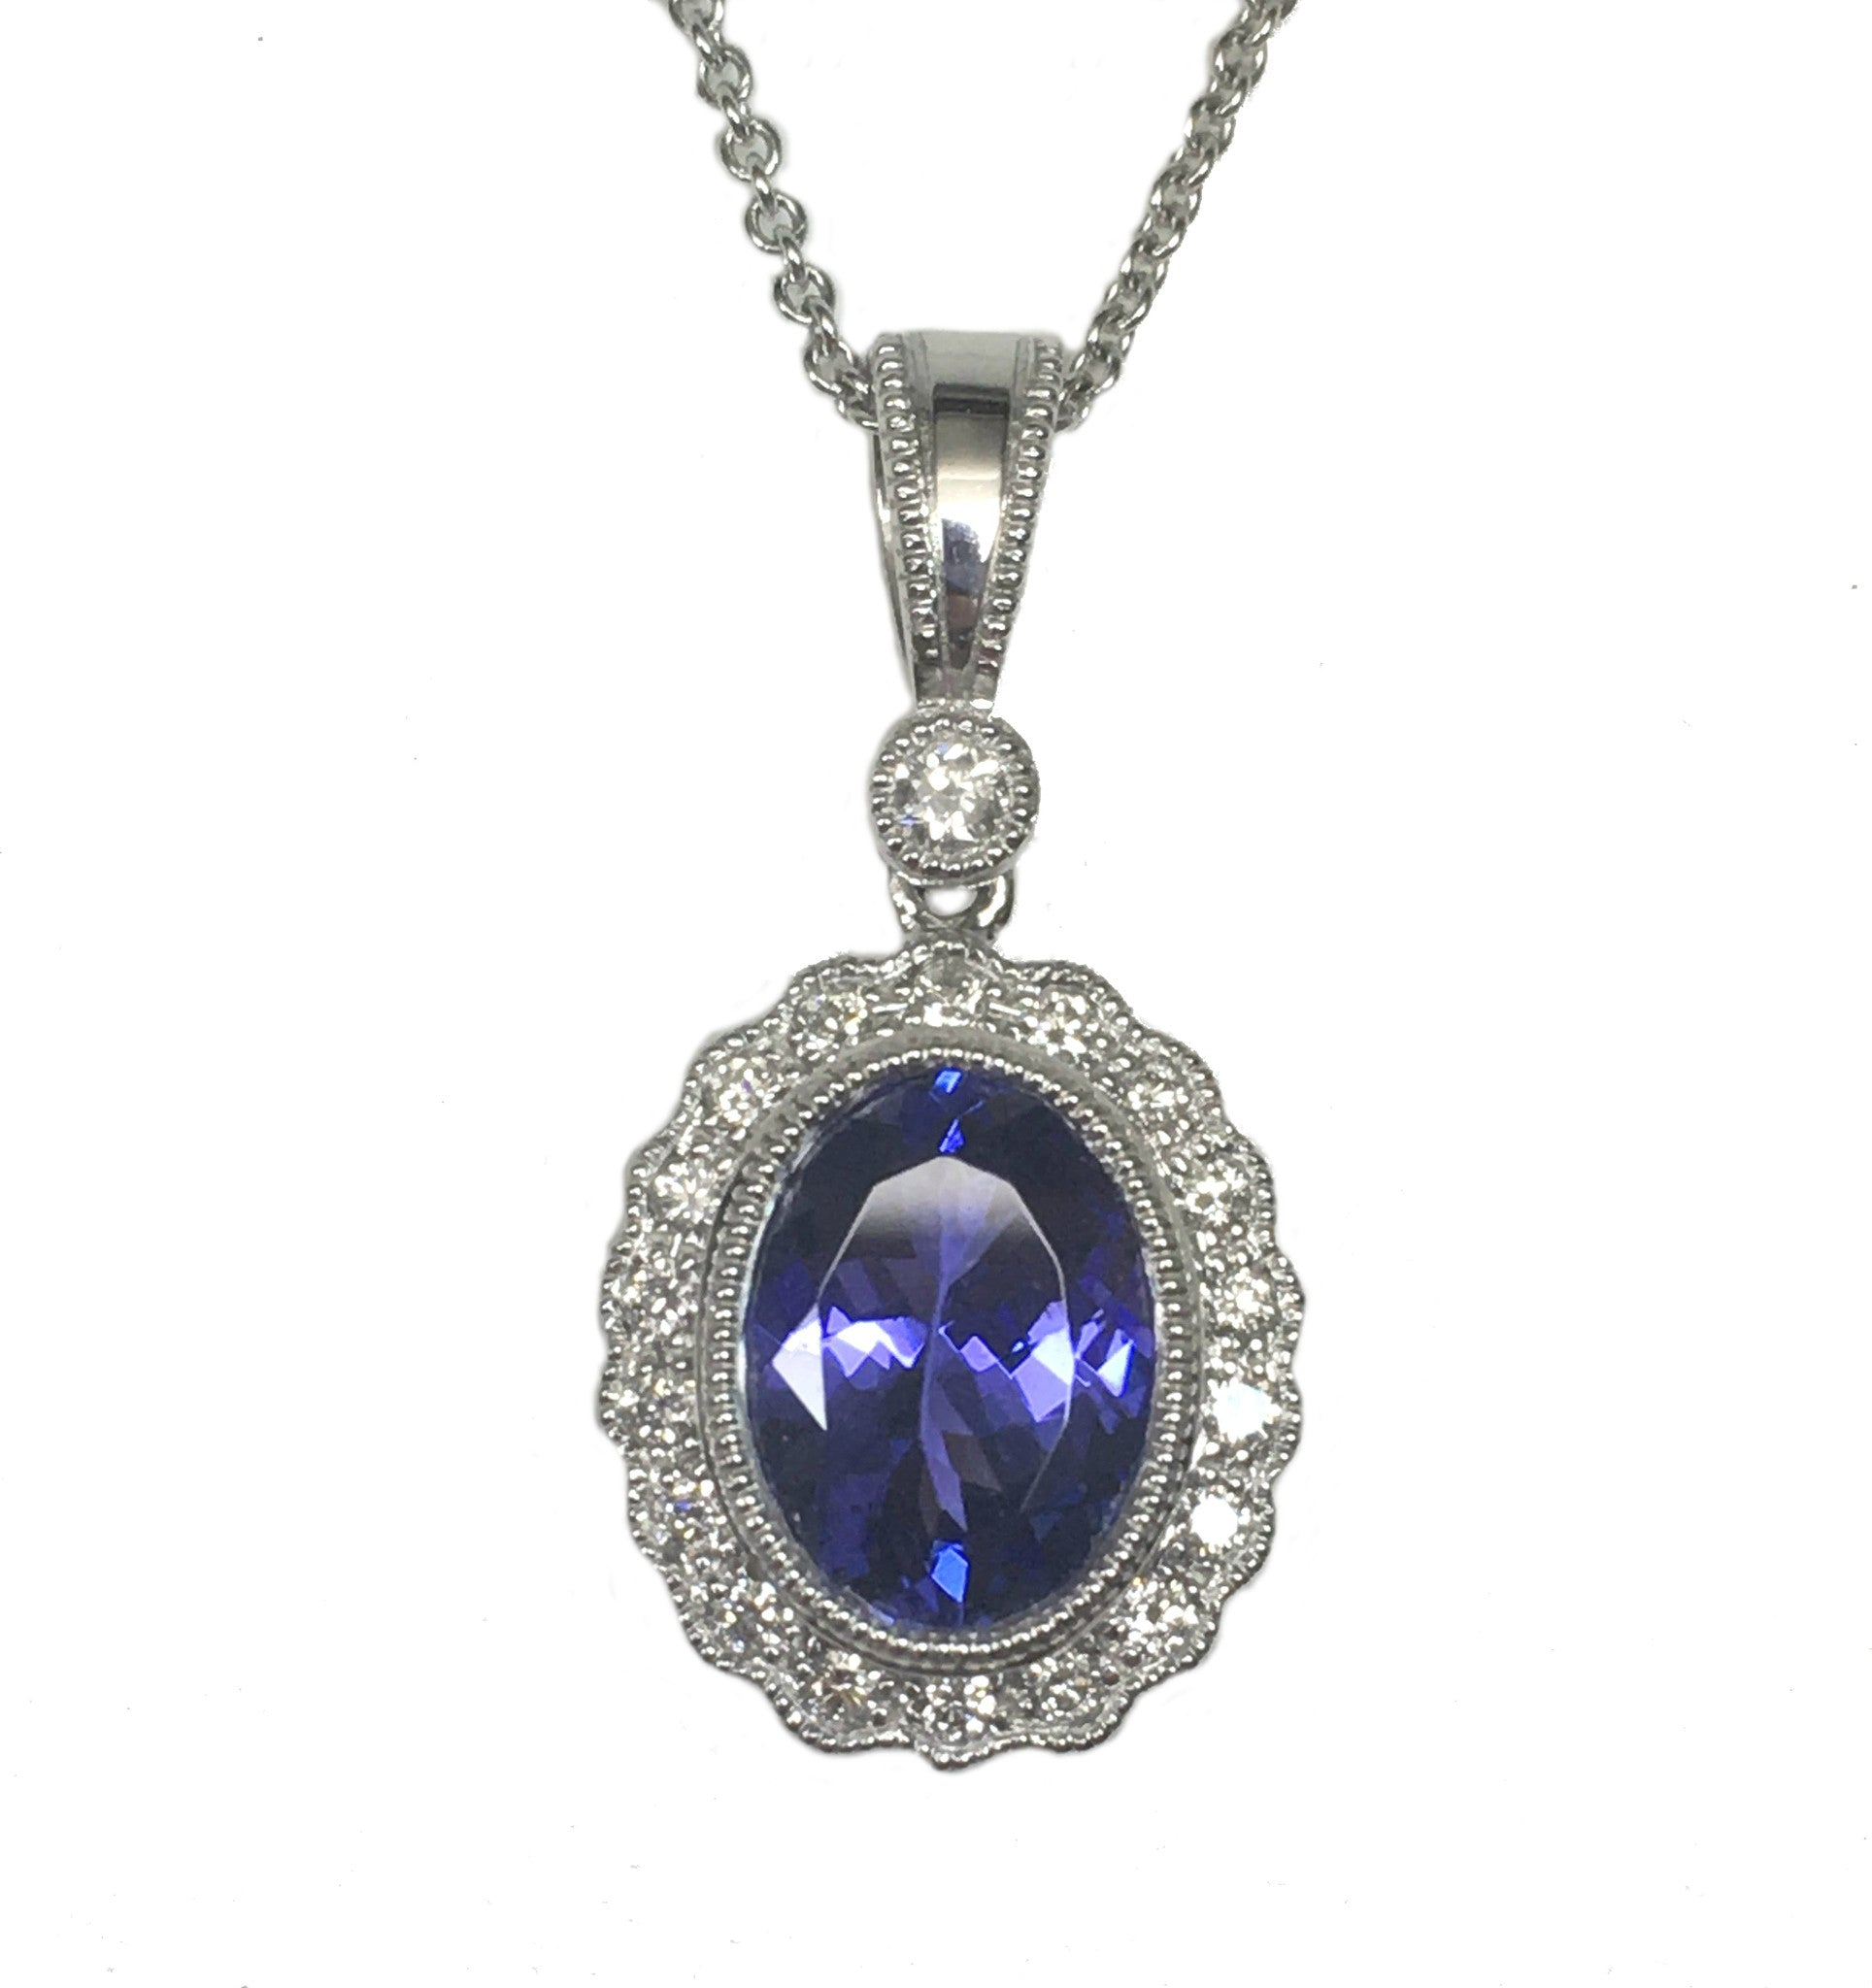 degraded faceted and necklace stones buy rondelle strands fine en stone tanzanite precious